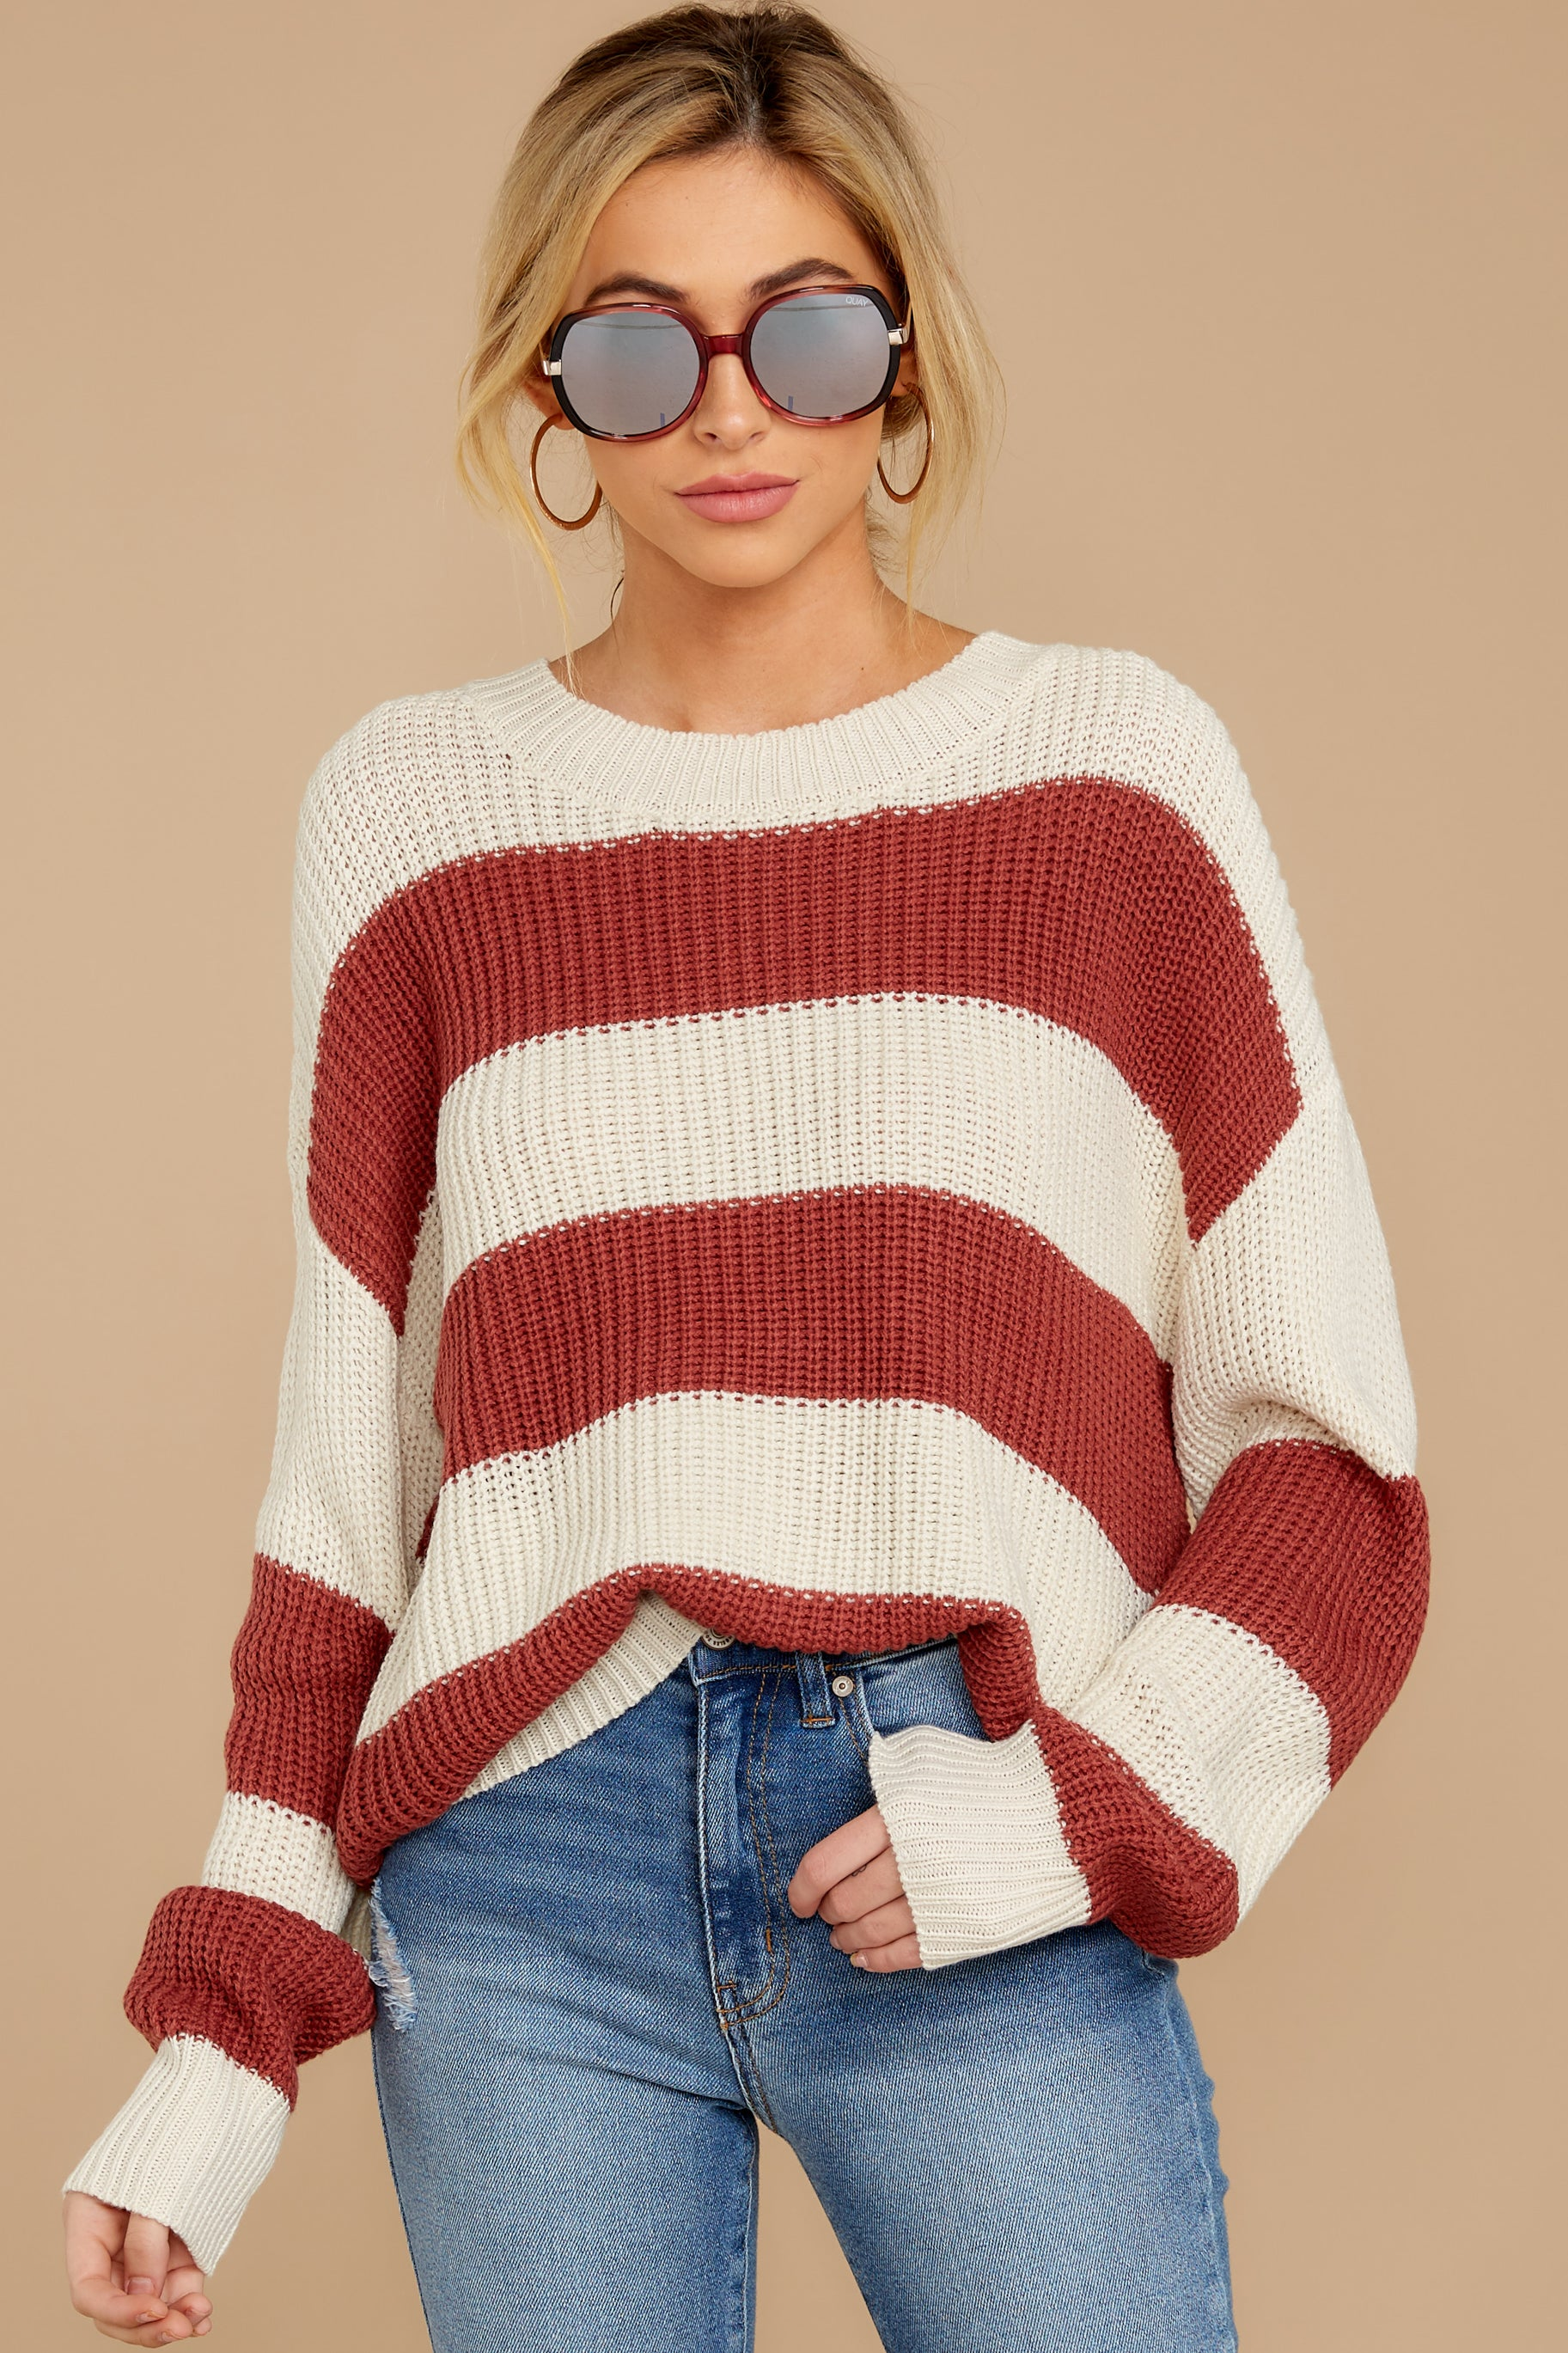 4 From Paris To Prague Marsala And White Stripe Sweater at reddressboutique.com